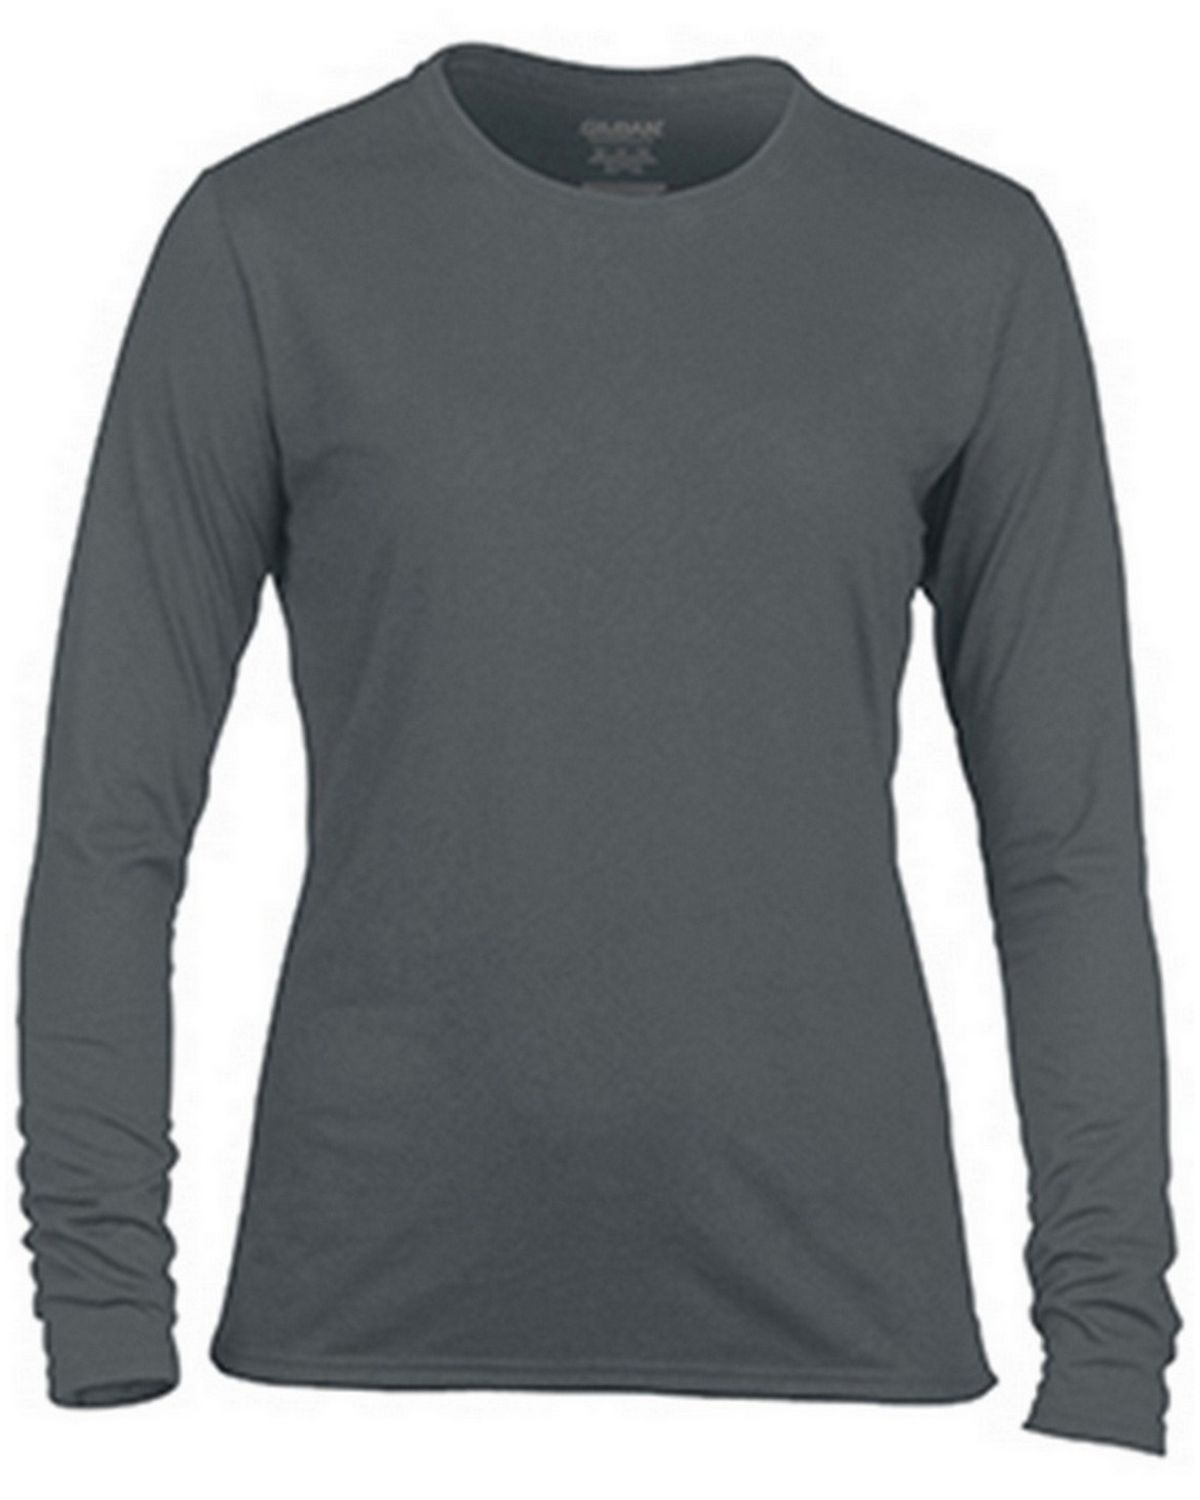 Gildan G42400L Ladies Long Sleeve Tee - Charcoal - 2X G42400L